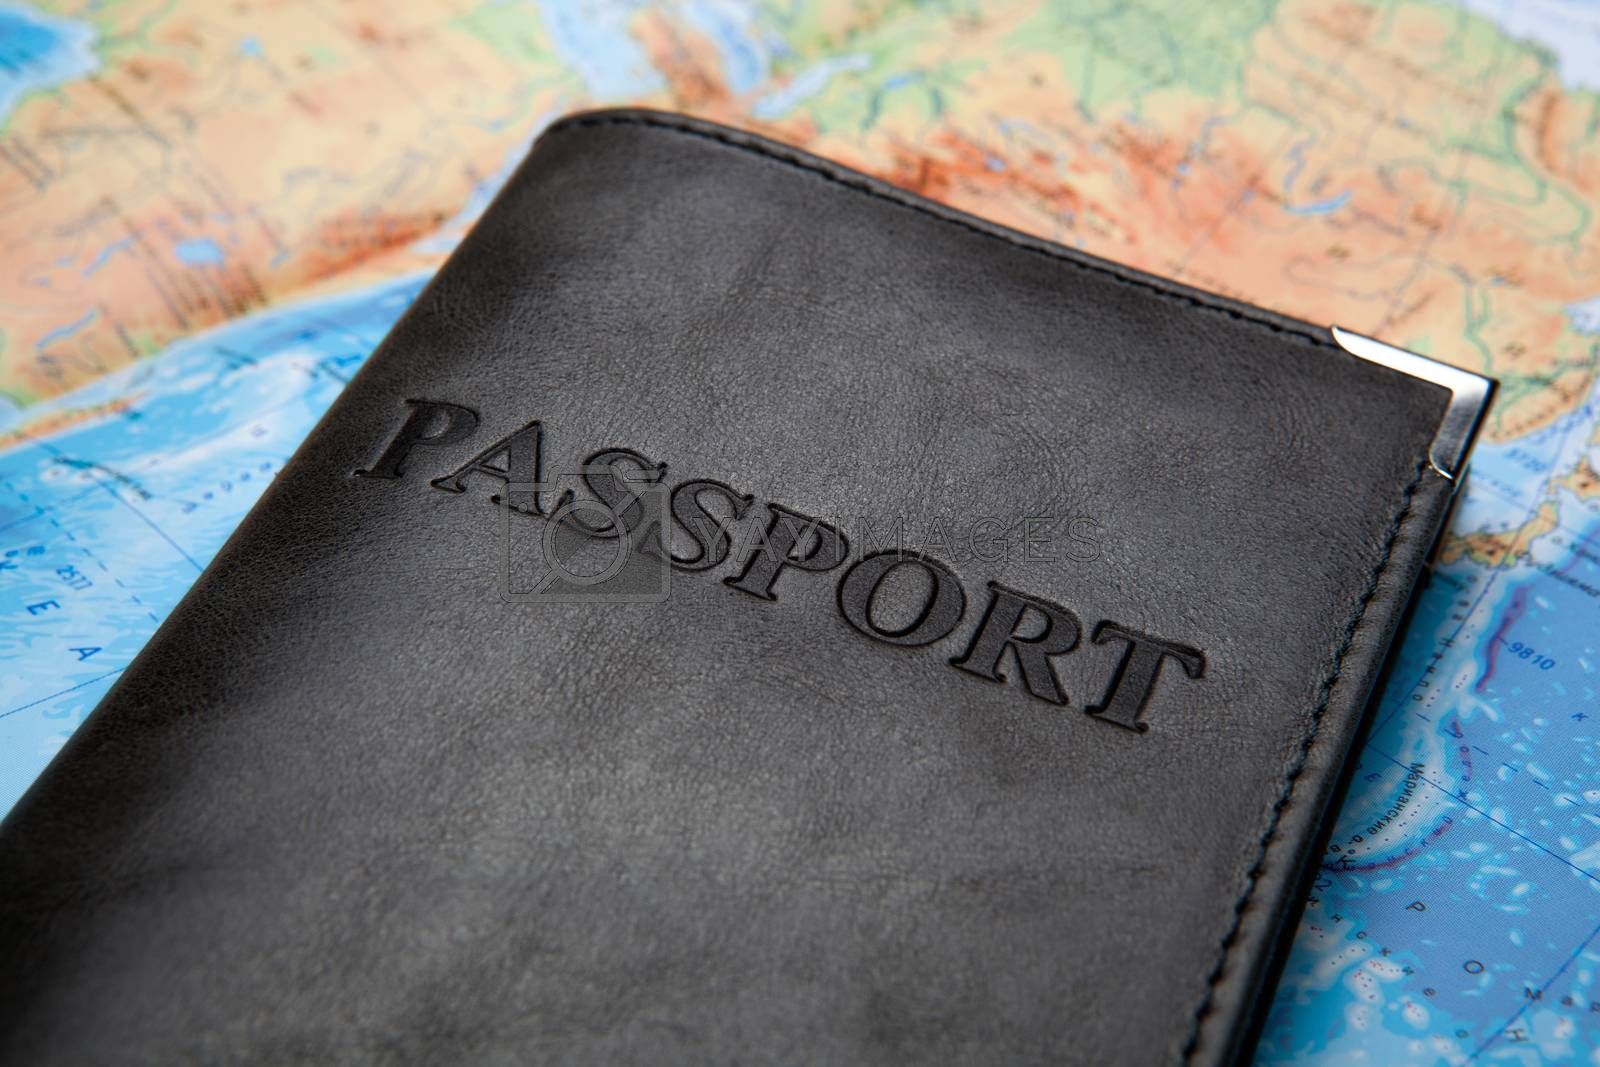 Royalty free image of passport in the bag on a map  by mizar_21984